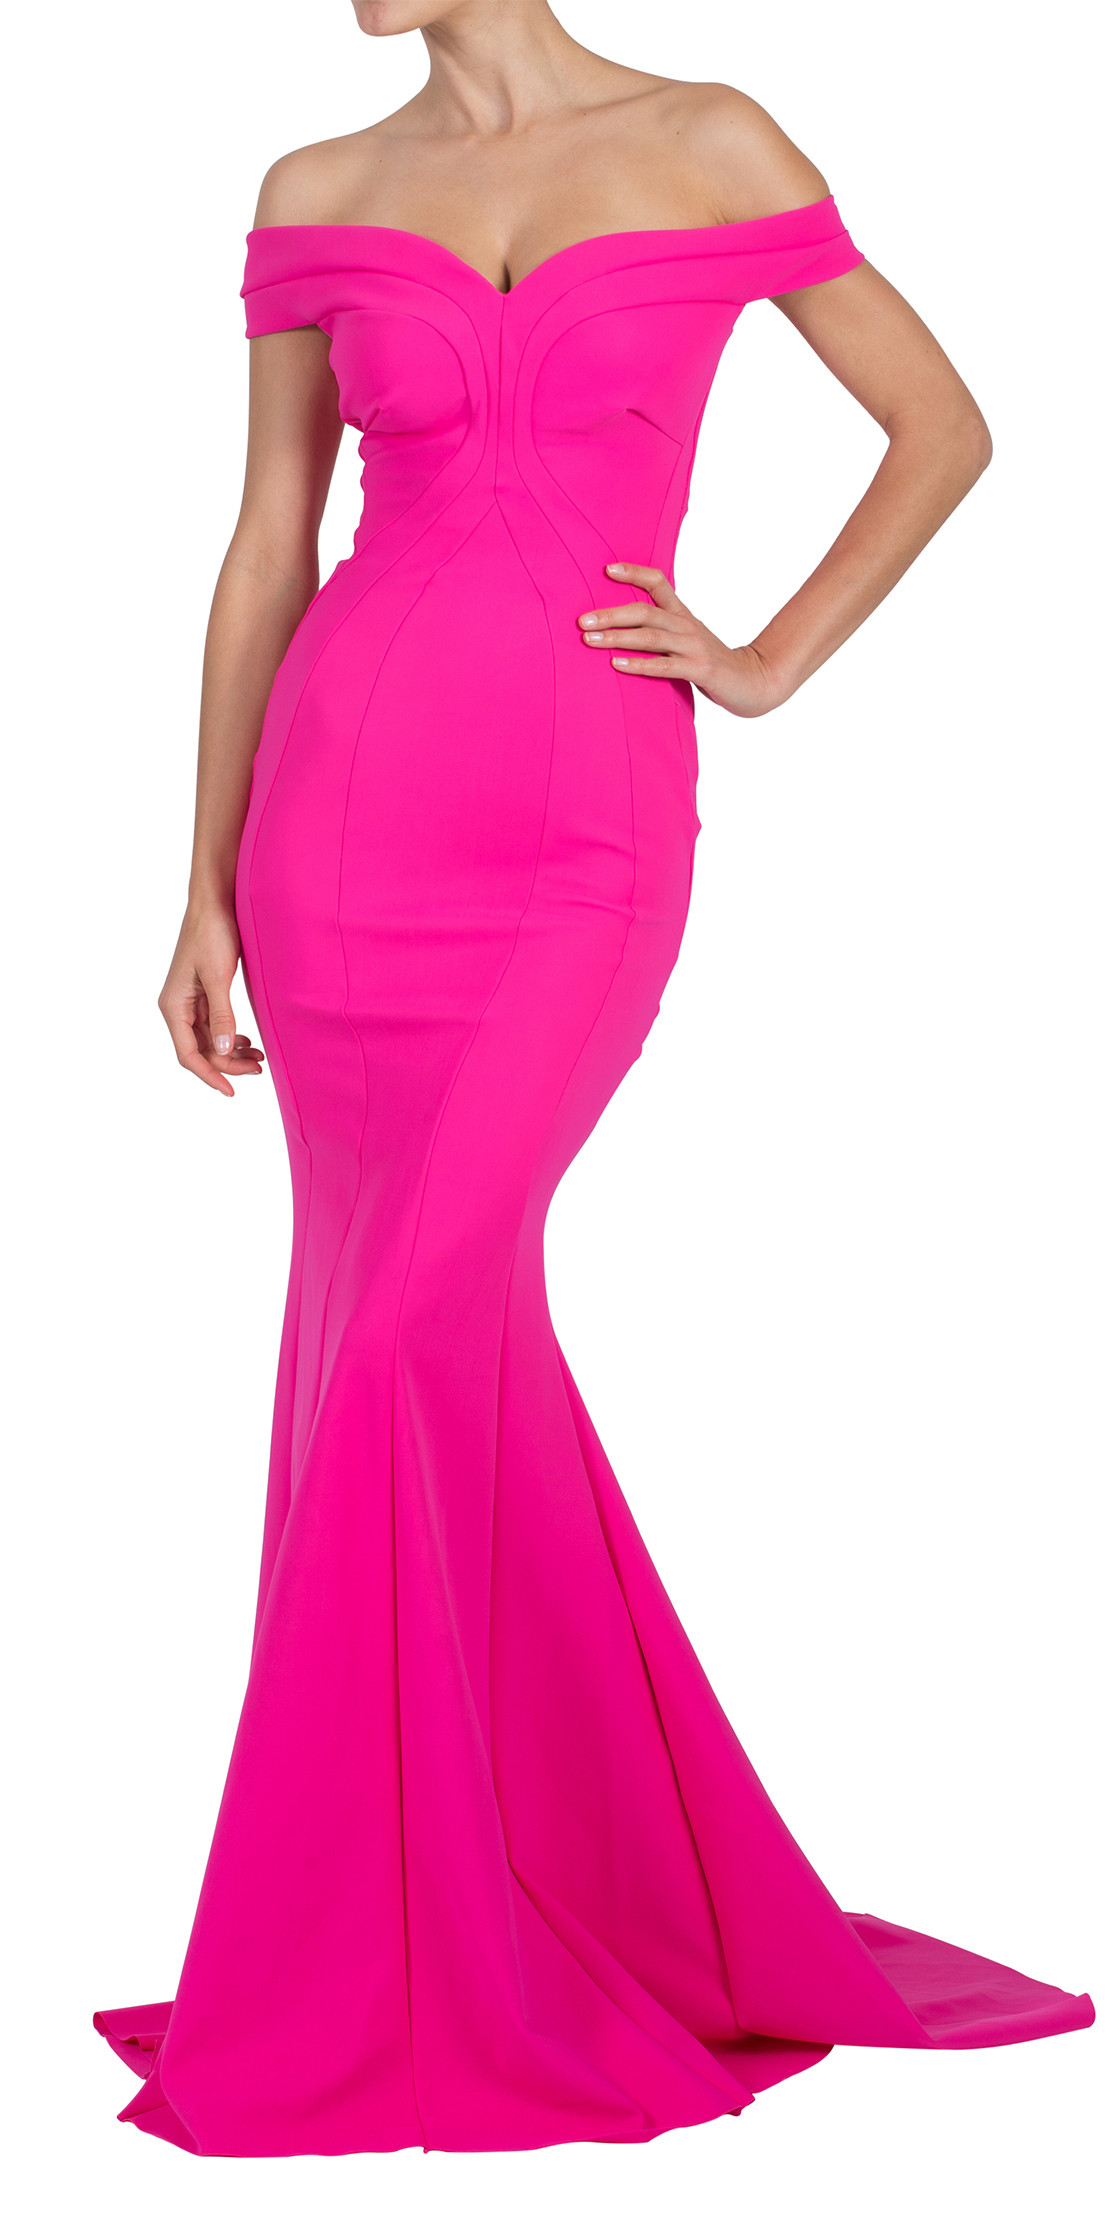 La Petite Robe di Chiara Boni  Off the Shoulder Mermaid Cut Dress